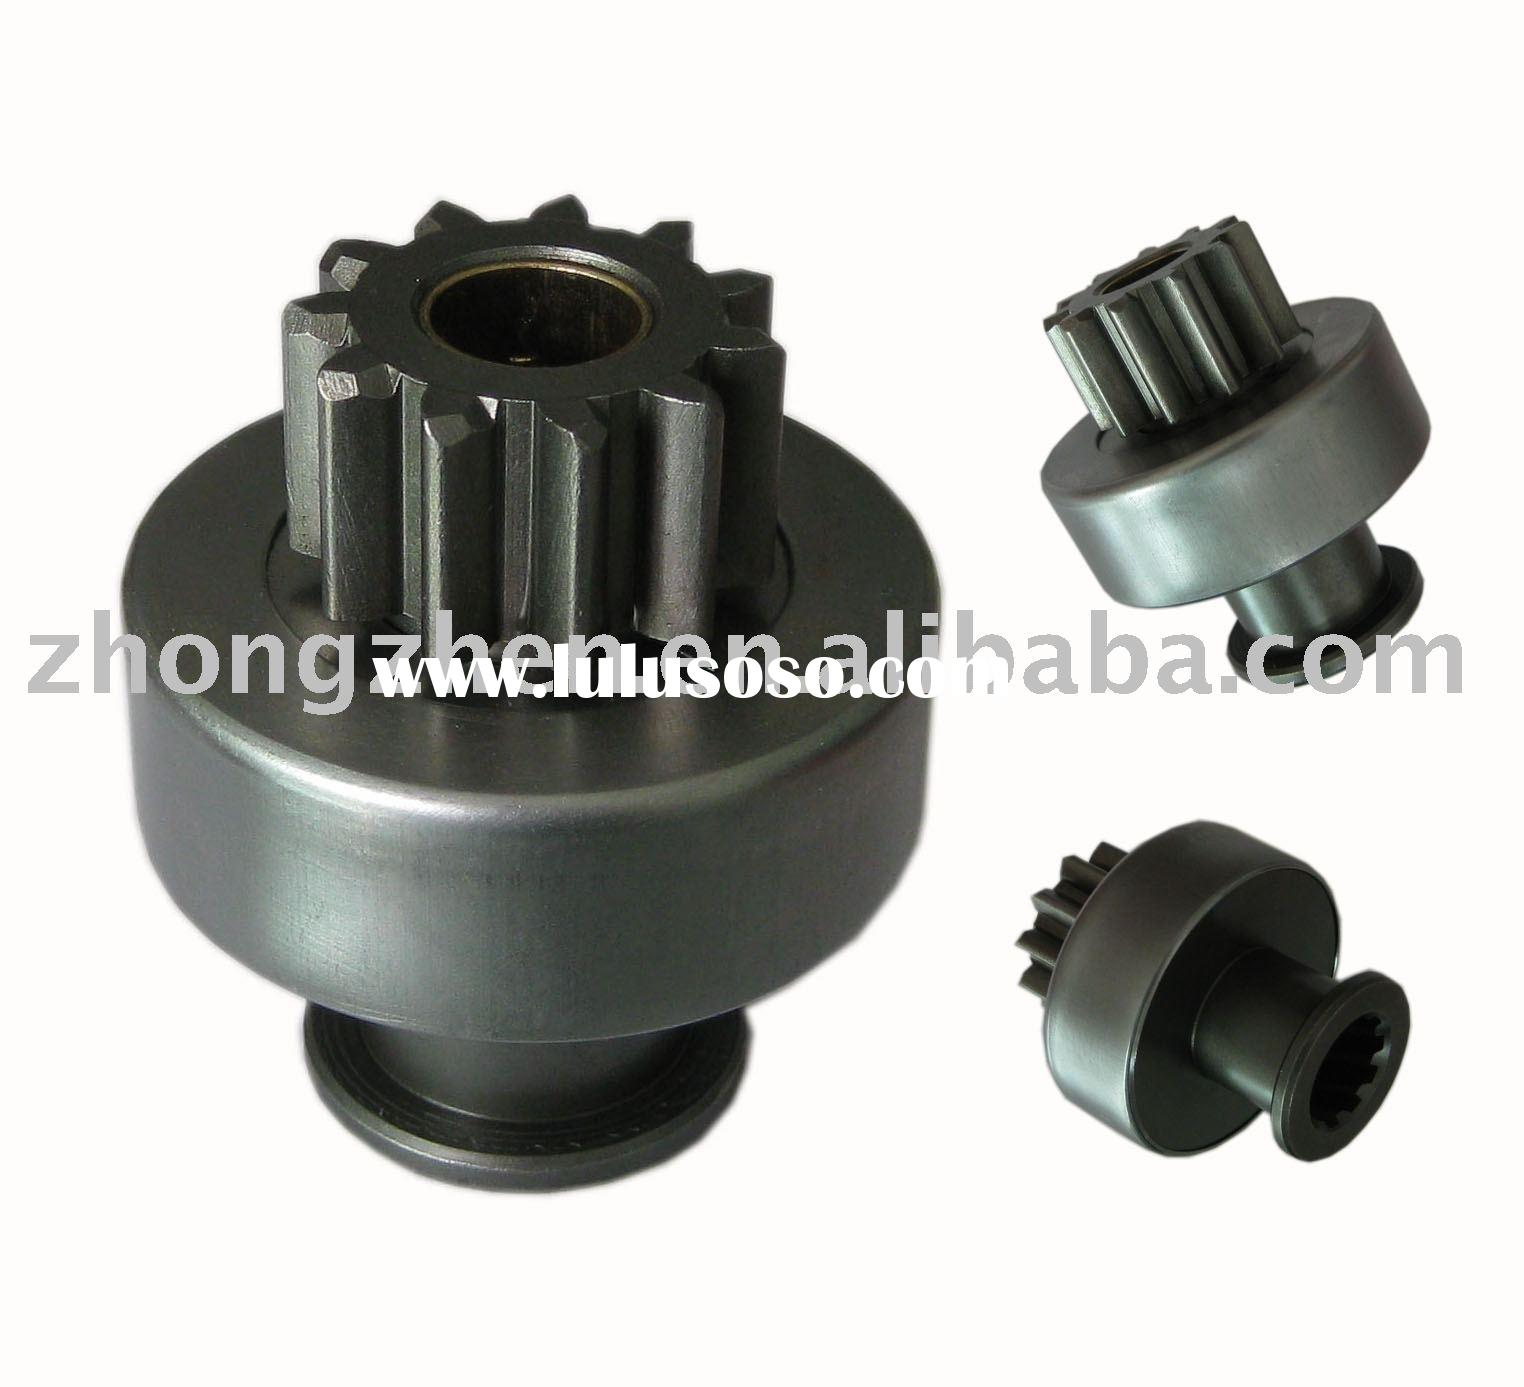 bendix gear/auto starter drive/pinion gear/bendix parts